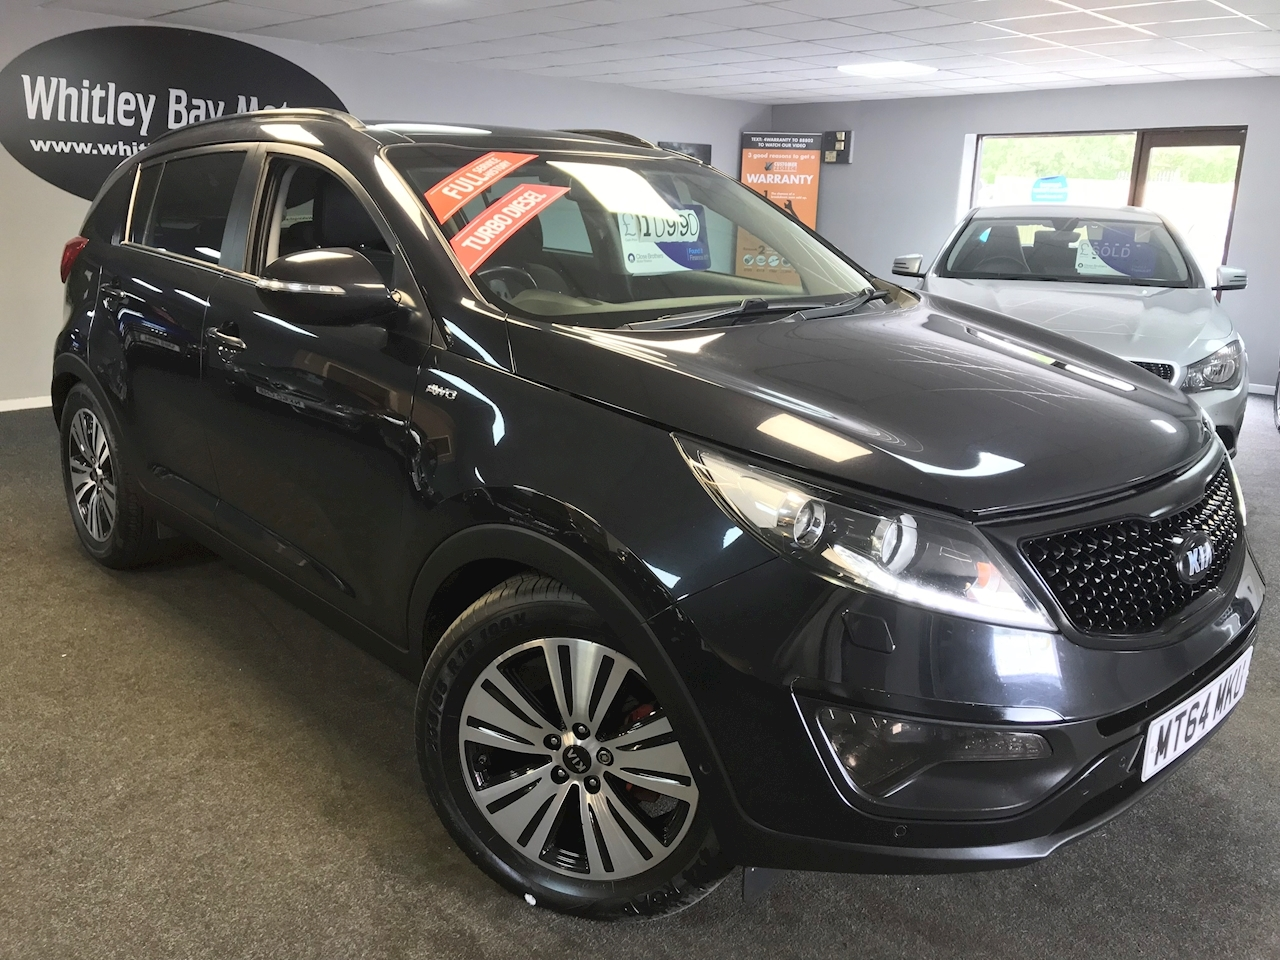 Sportage Crdi Kx-4 Estate 2.0 Manual Diesel